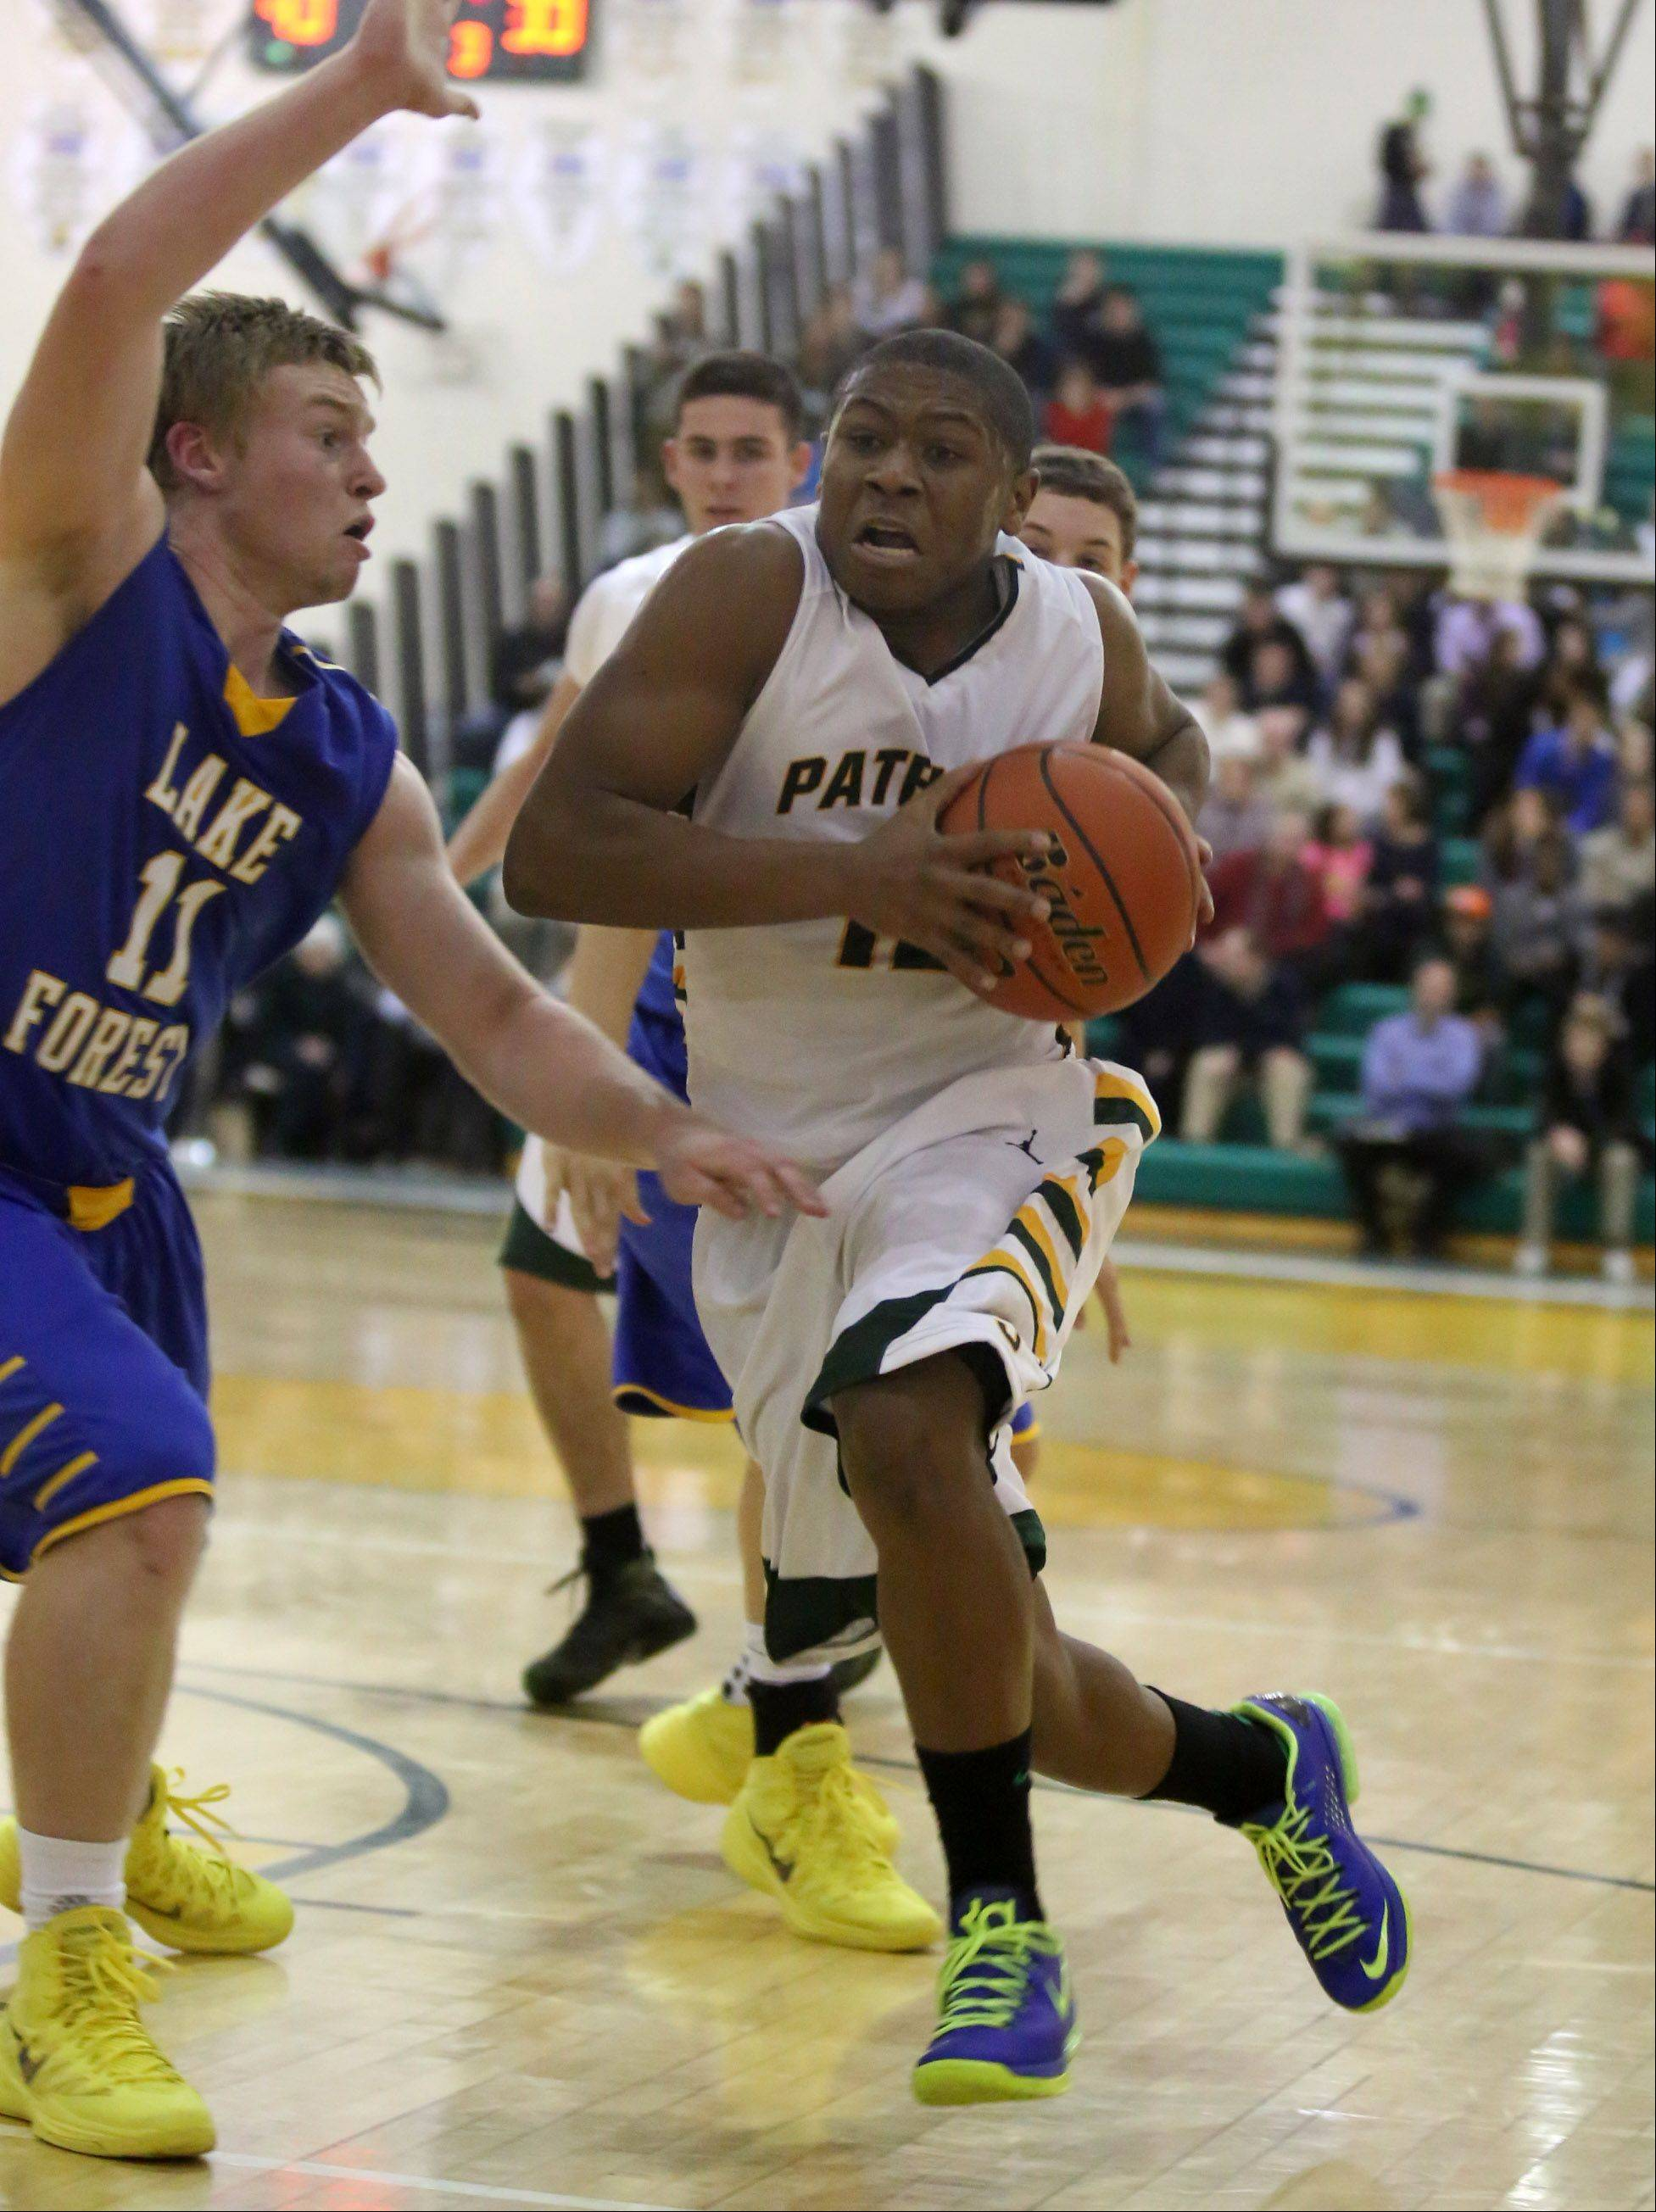 Matt Johnson, here driving to the basket against Lake Forest's Jack Traynor, is showing toughness as he adapts to the loss of his mother and fits in with his new basketball family at Stevenson.